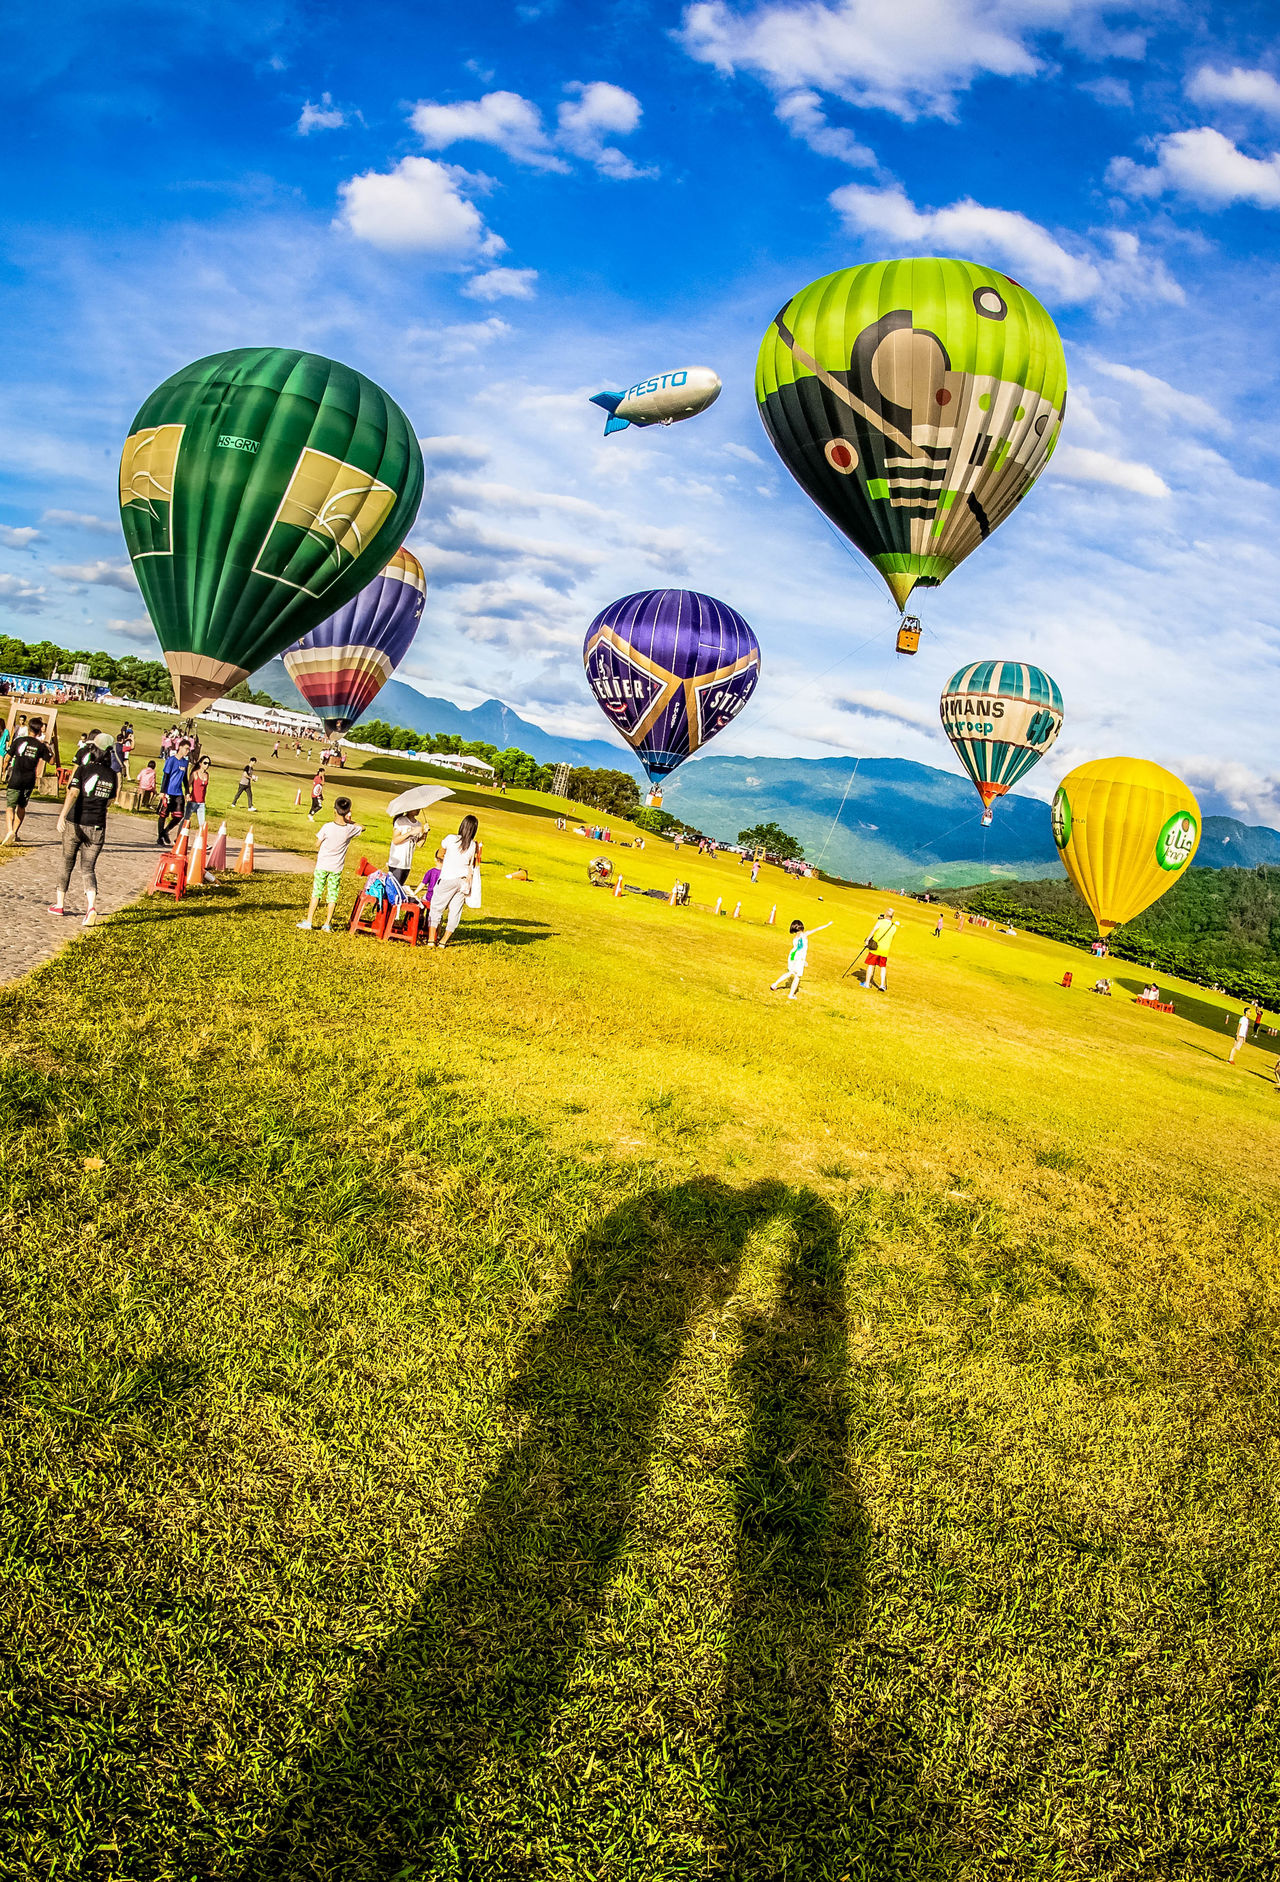 Ballooning Festival Cloud - Sky Couple Day Grass Hot Air Balloon Large Group Of People Leisure Activity Multi Colored Outdoors People Recreational Pursuit Sky Travel Destinations